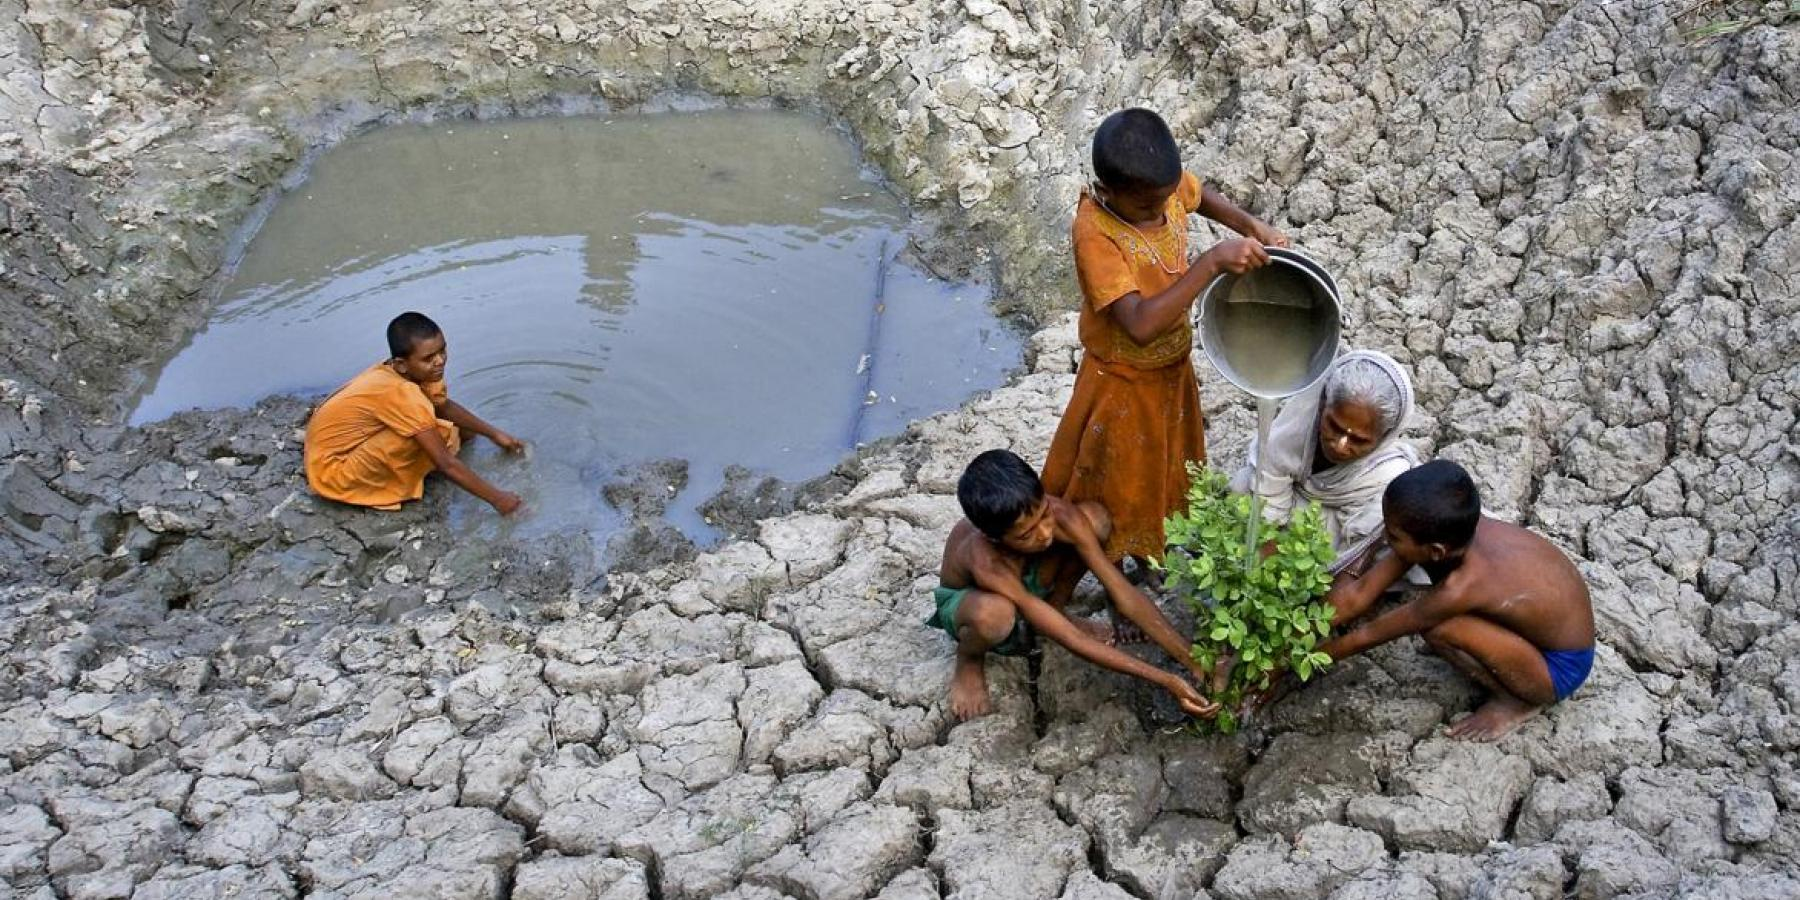 A grandmother and her grandchildren plant a tree in a drought-stricken rural area of West Bengal, India.